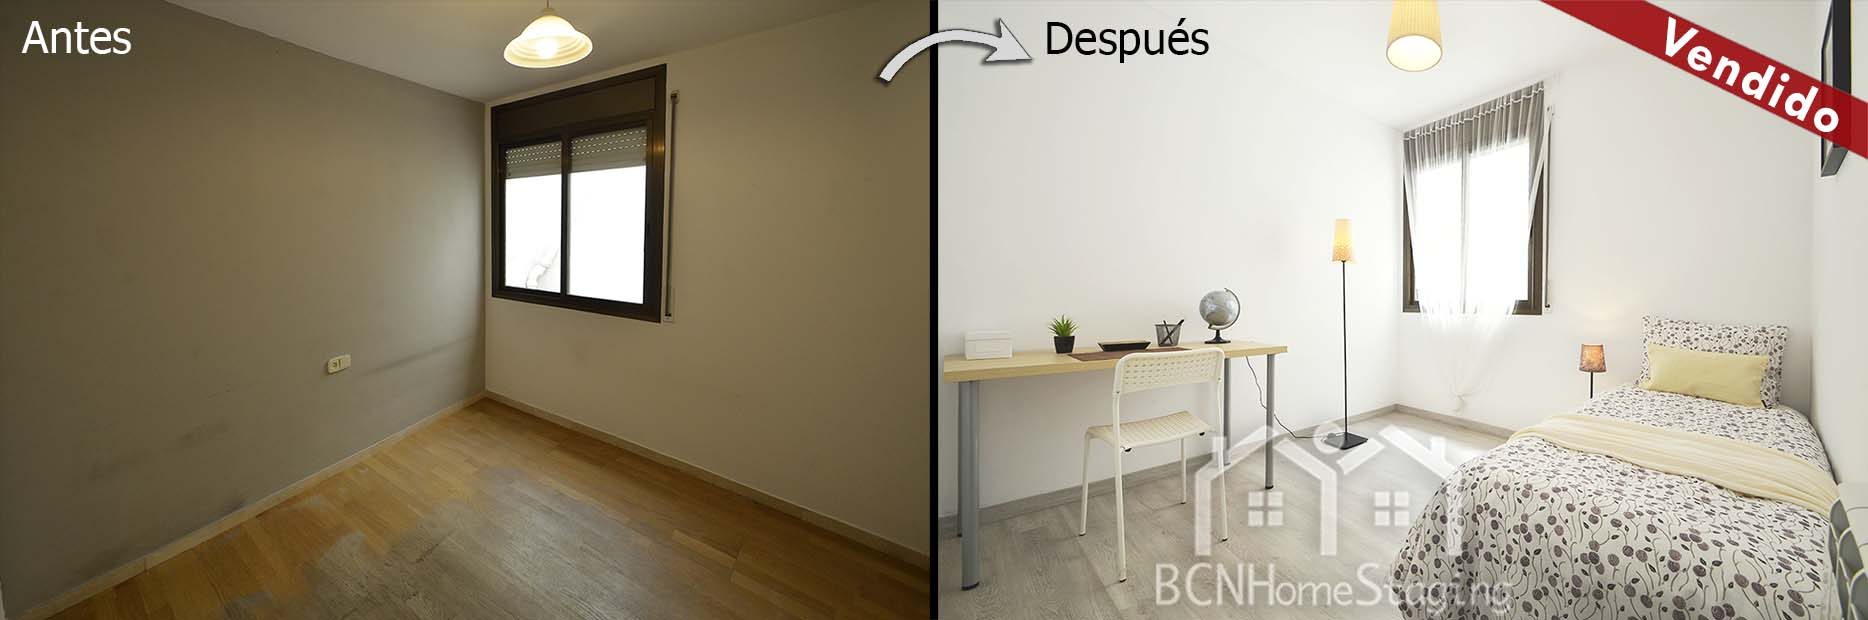 Home Stagging Bcn Home Staging We Prepare Your House For Selling